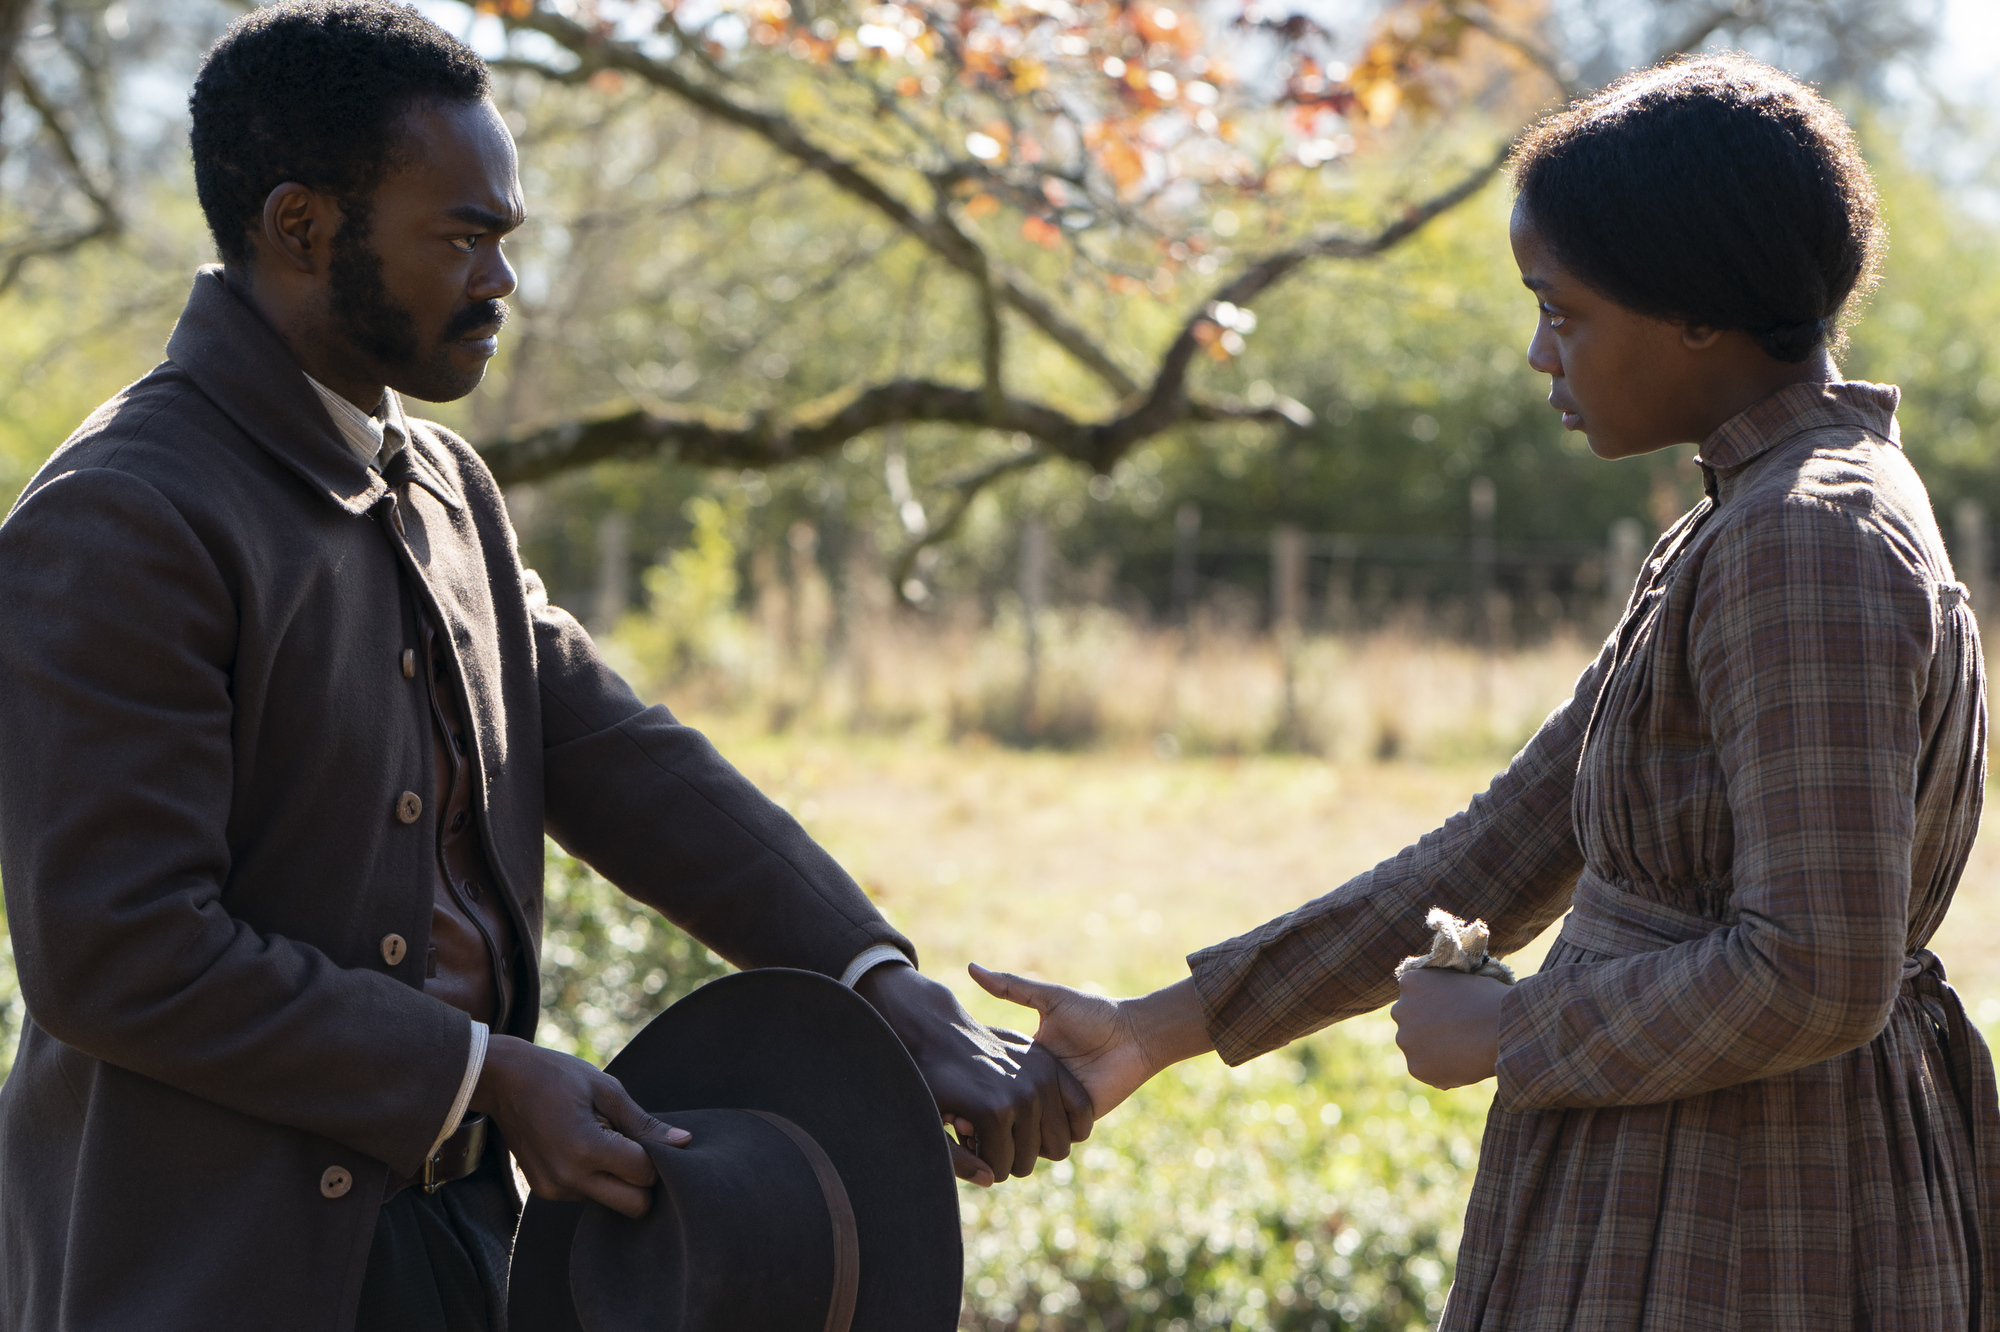 William Jackson Harper and Thuso Mbedu as Royal and Cora in The Underground Railroad